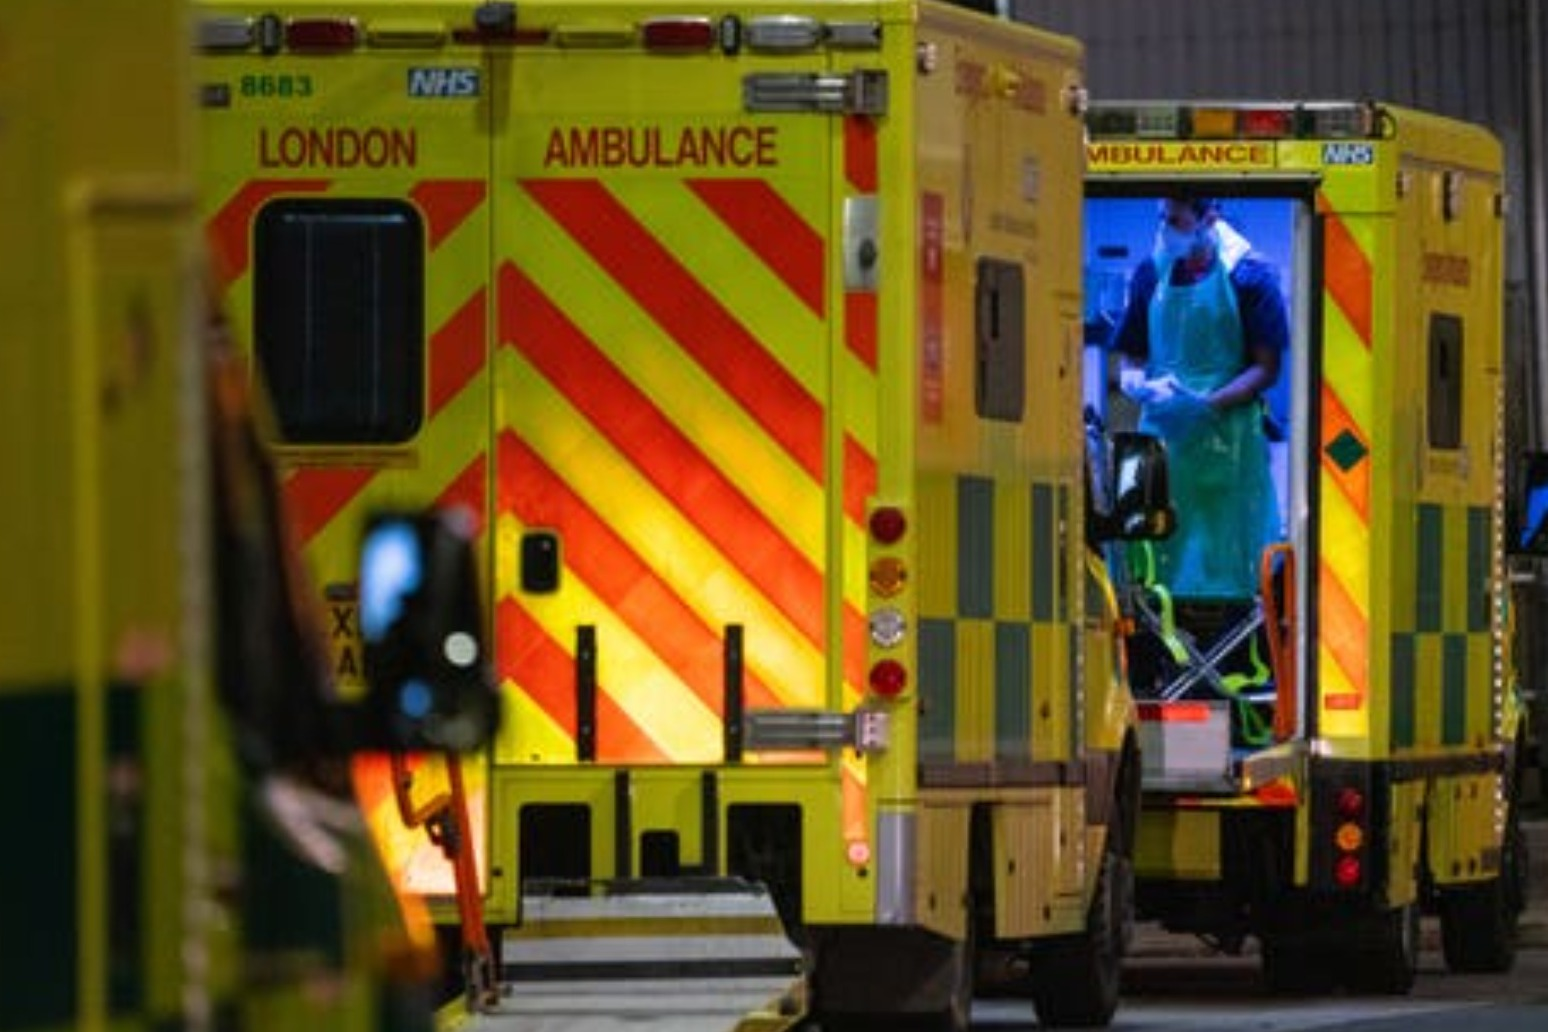 Scientists warn Covid deaths will continue to rise after record daily toll